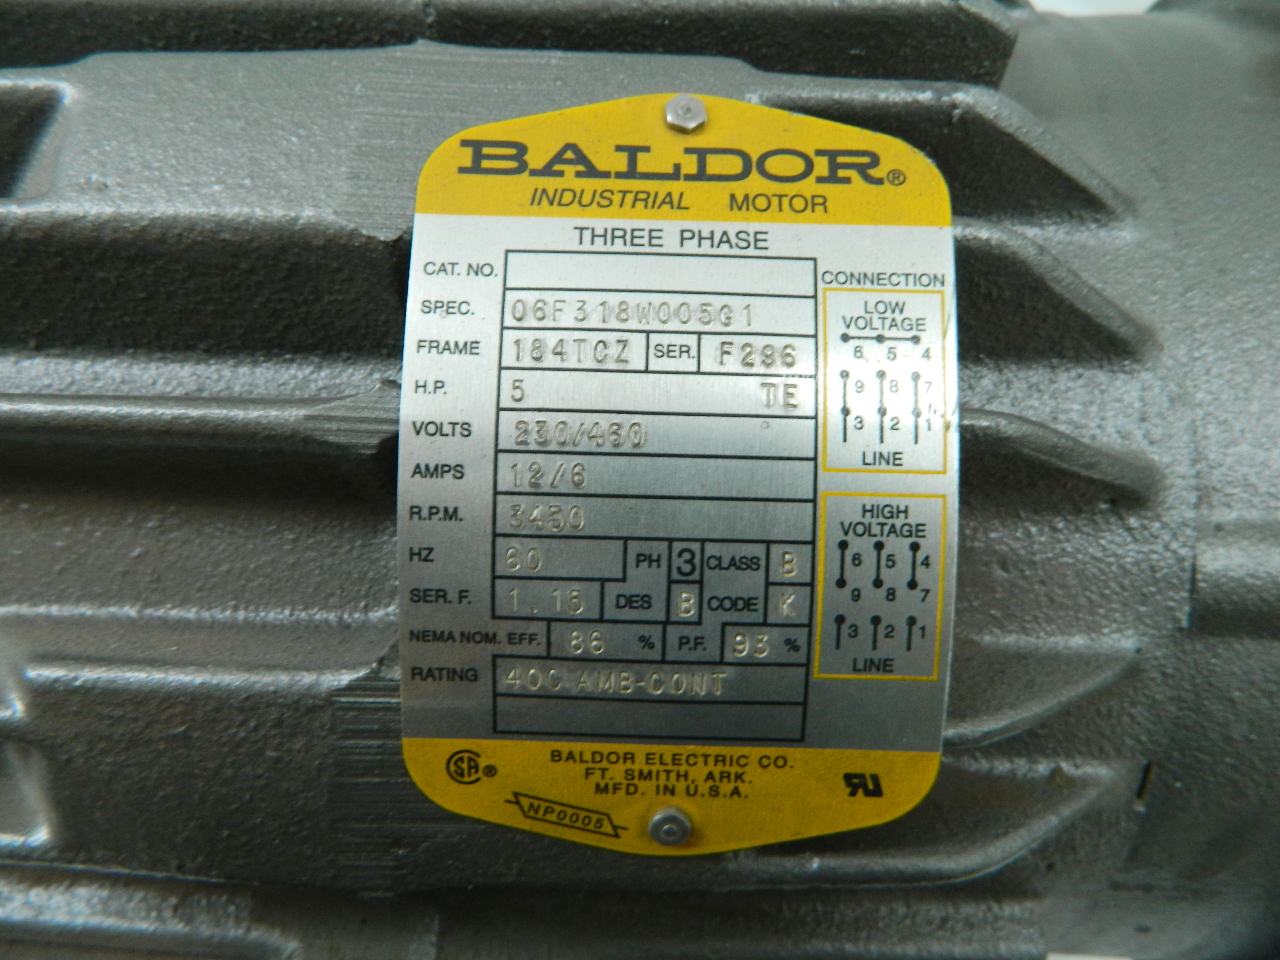 Baldor 5hp Motor Wiring Diagram Capacitor Modern Design Of Single Phase Diagrams Electric Start Run 3450 Rpm 184tcz Frame Te 208